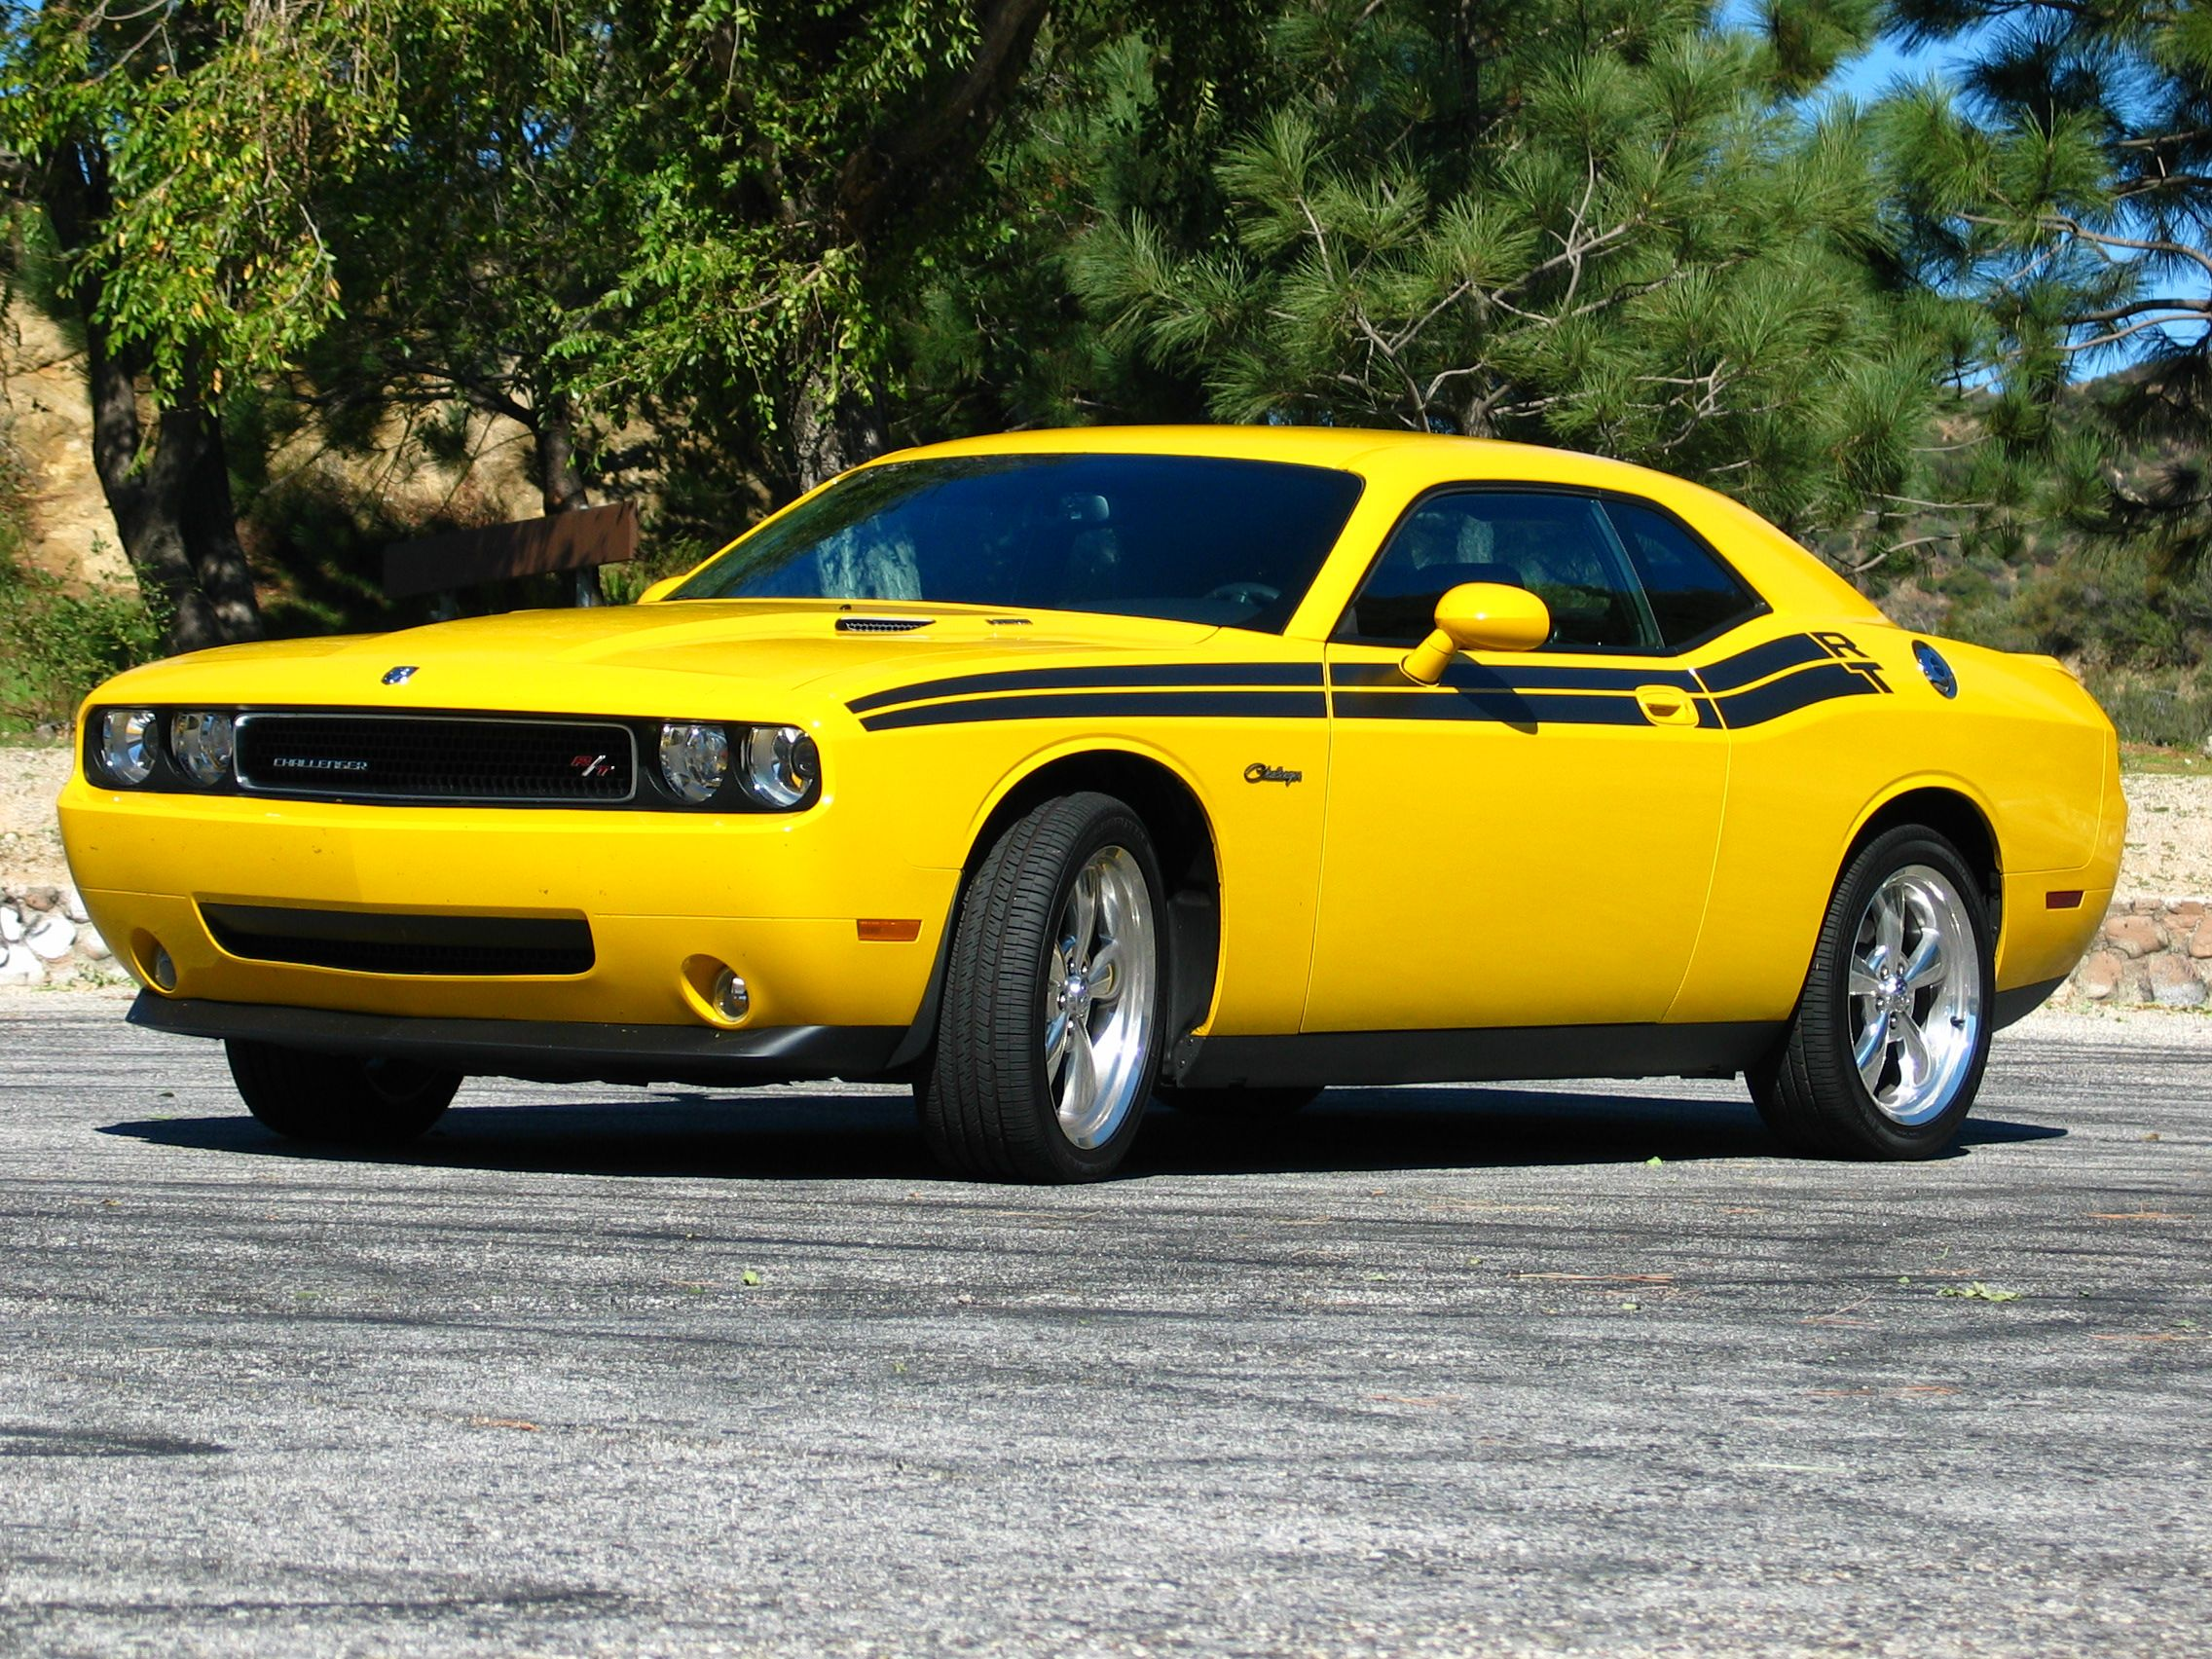 Dodge challenger rt classic yellow and black